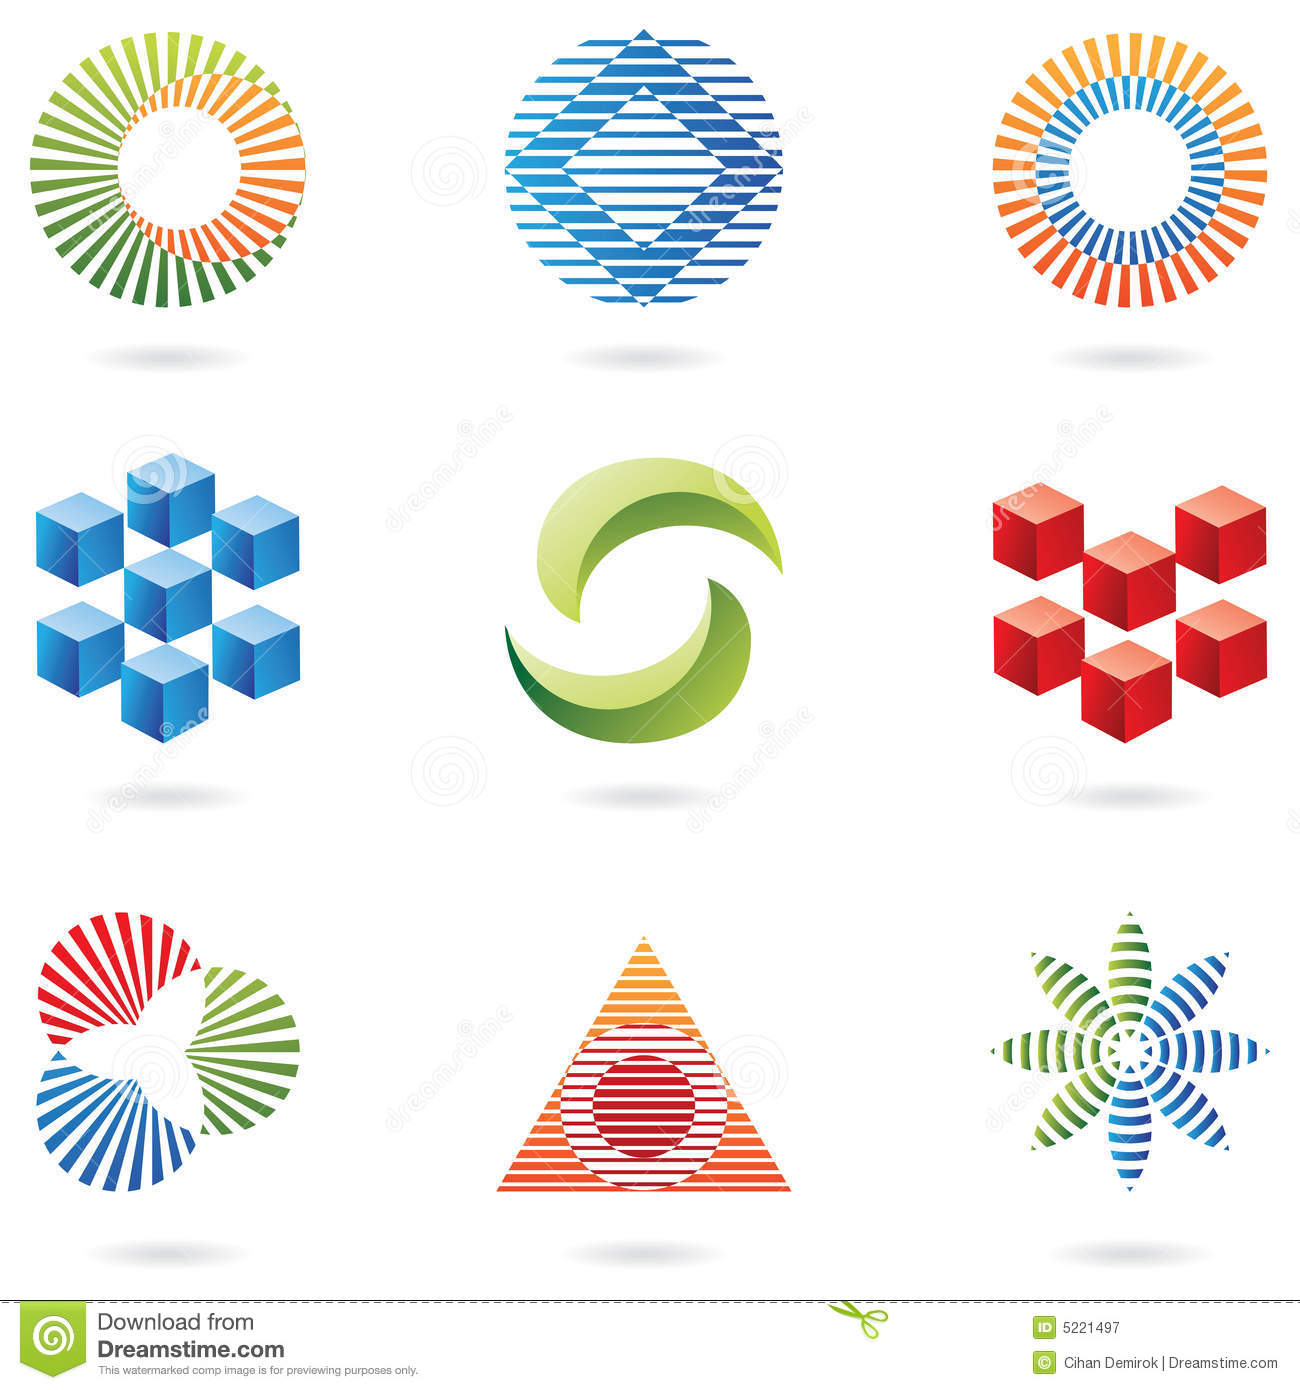 Logos (lines and cubes)